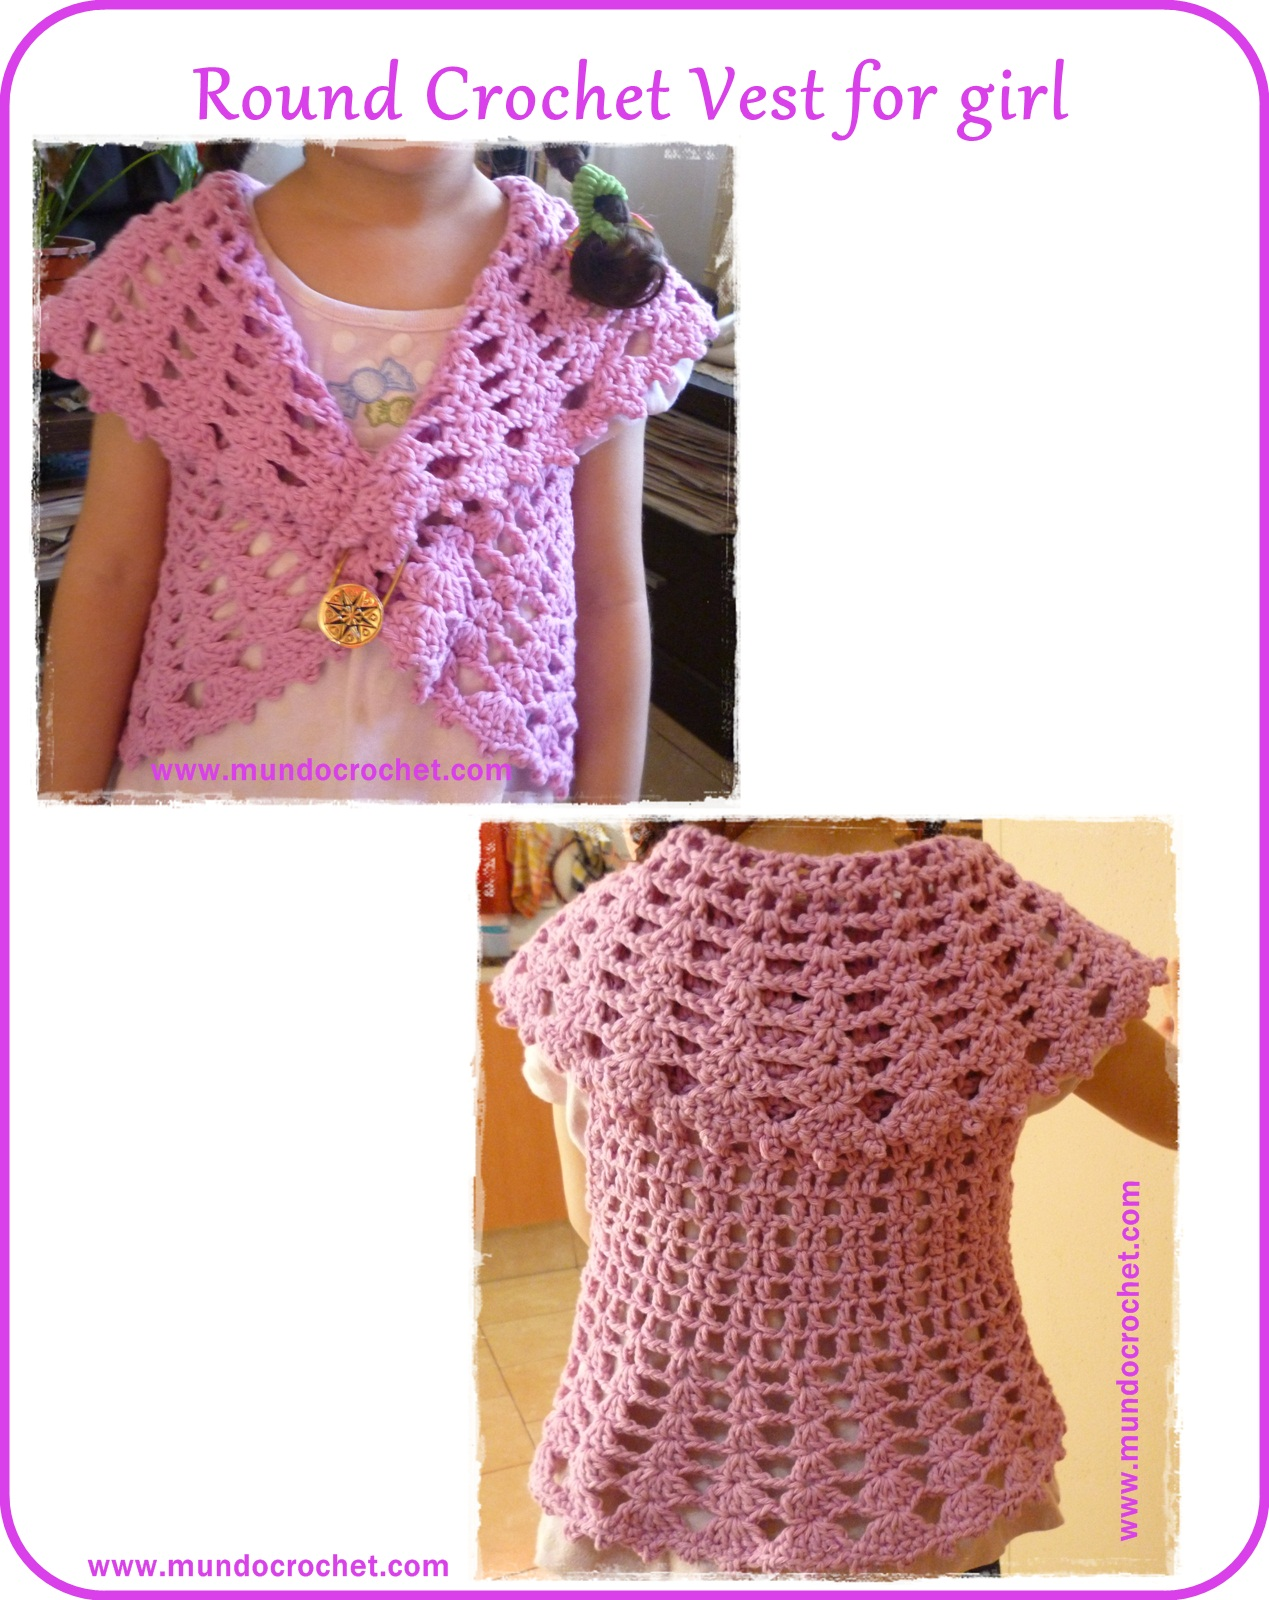 Round crochet vest for girl